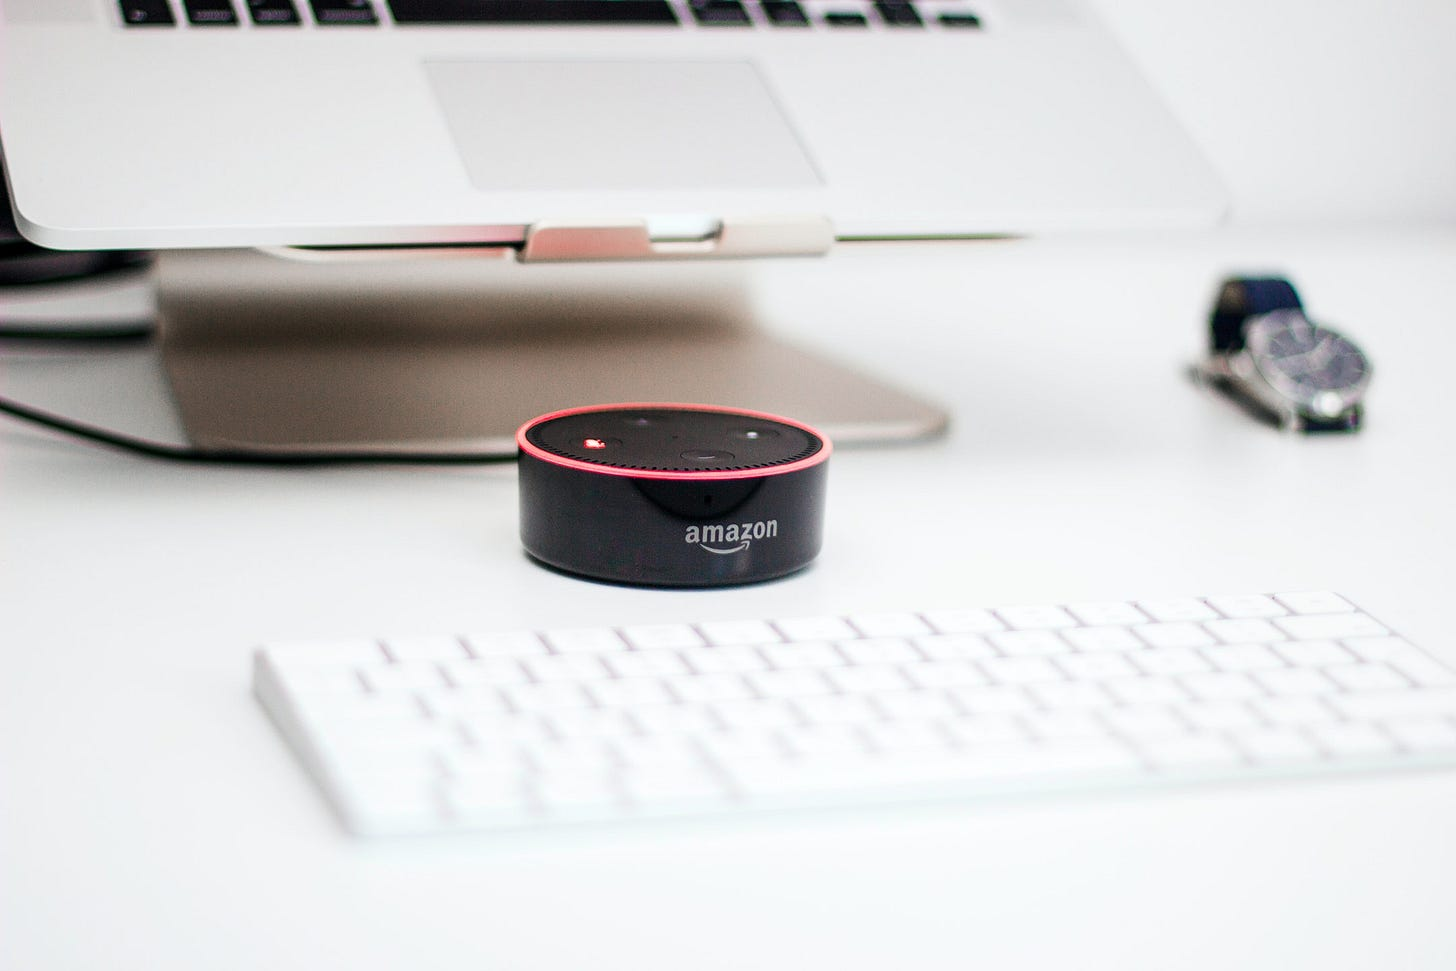 An Amazon Echo Dot showing a red ring in front of a laptop. Piotr Cichosz / Unsplash